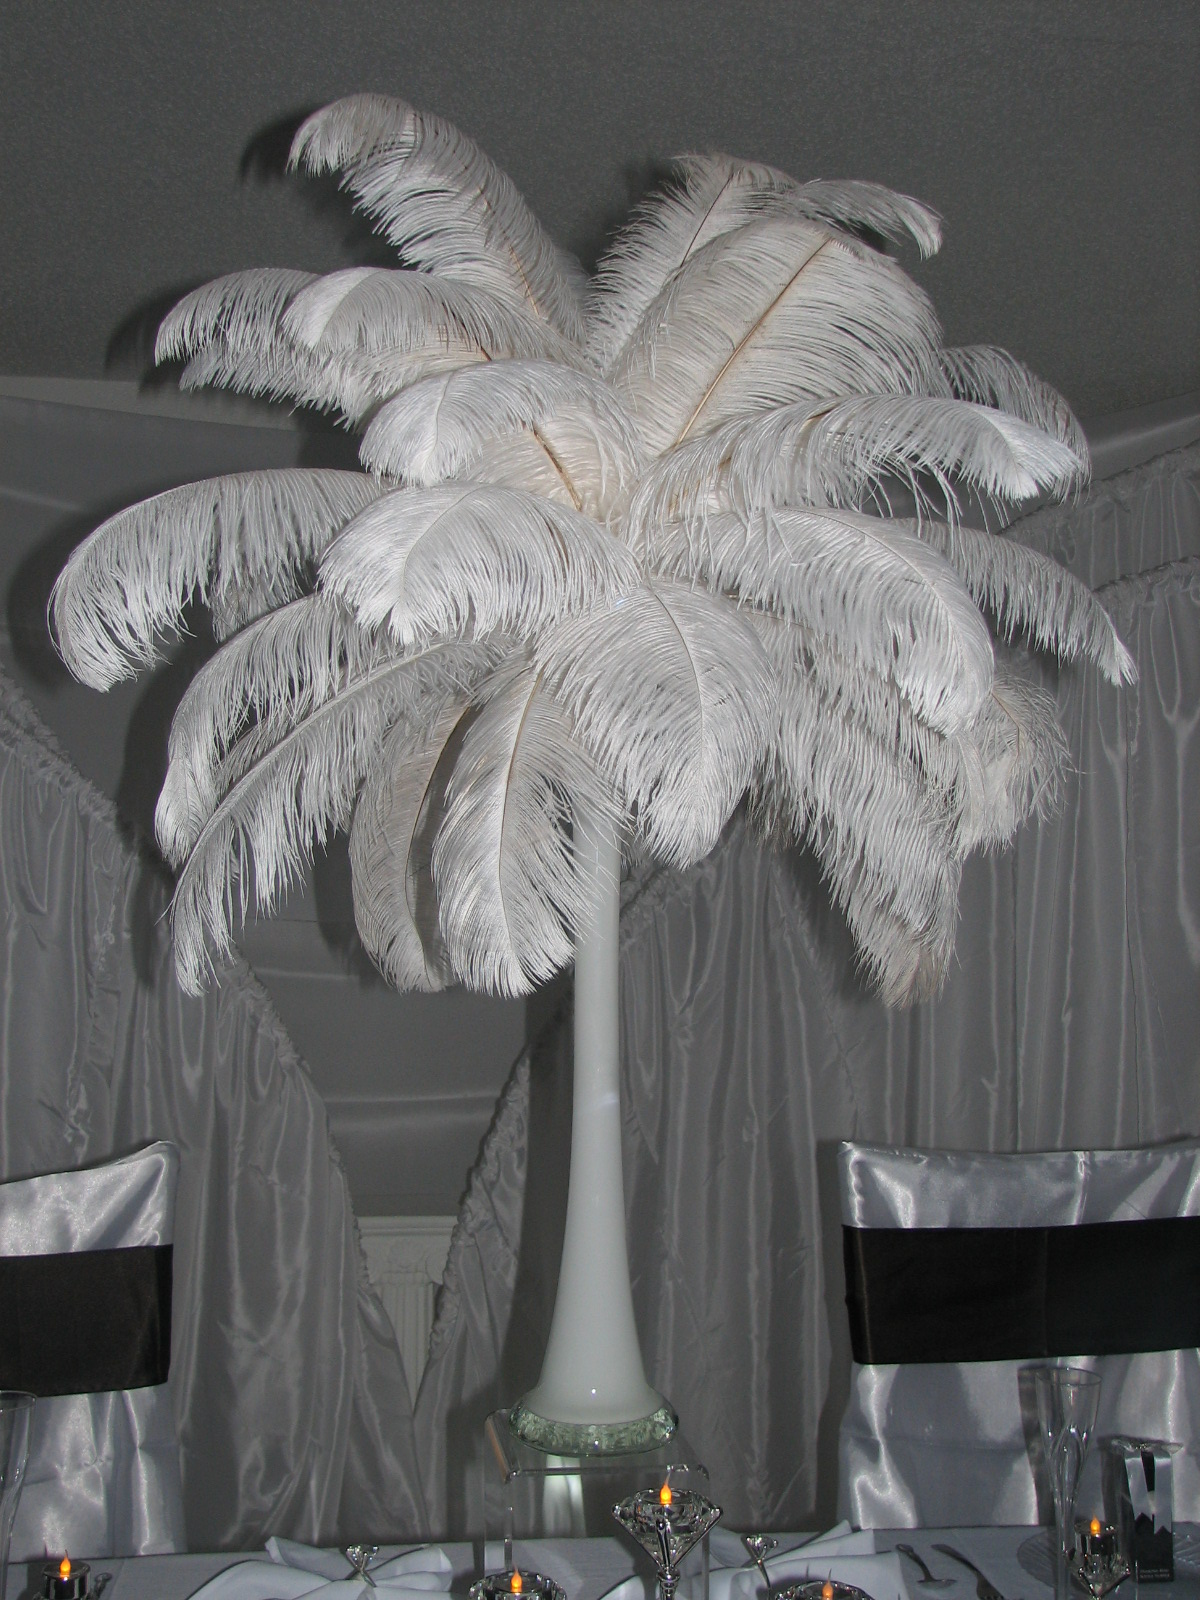 Ostrich Feather Centerpiece : Ostrich feather centerpiece decorations flickr photo